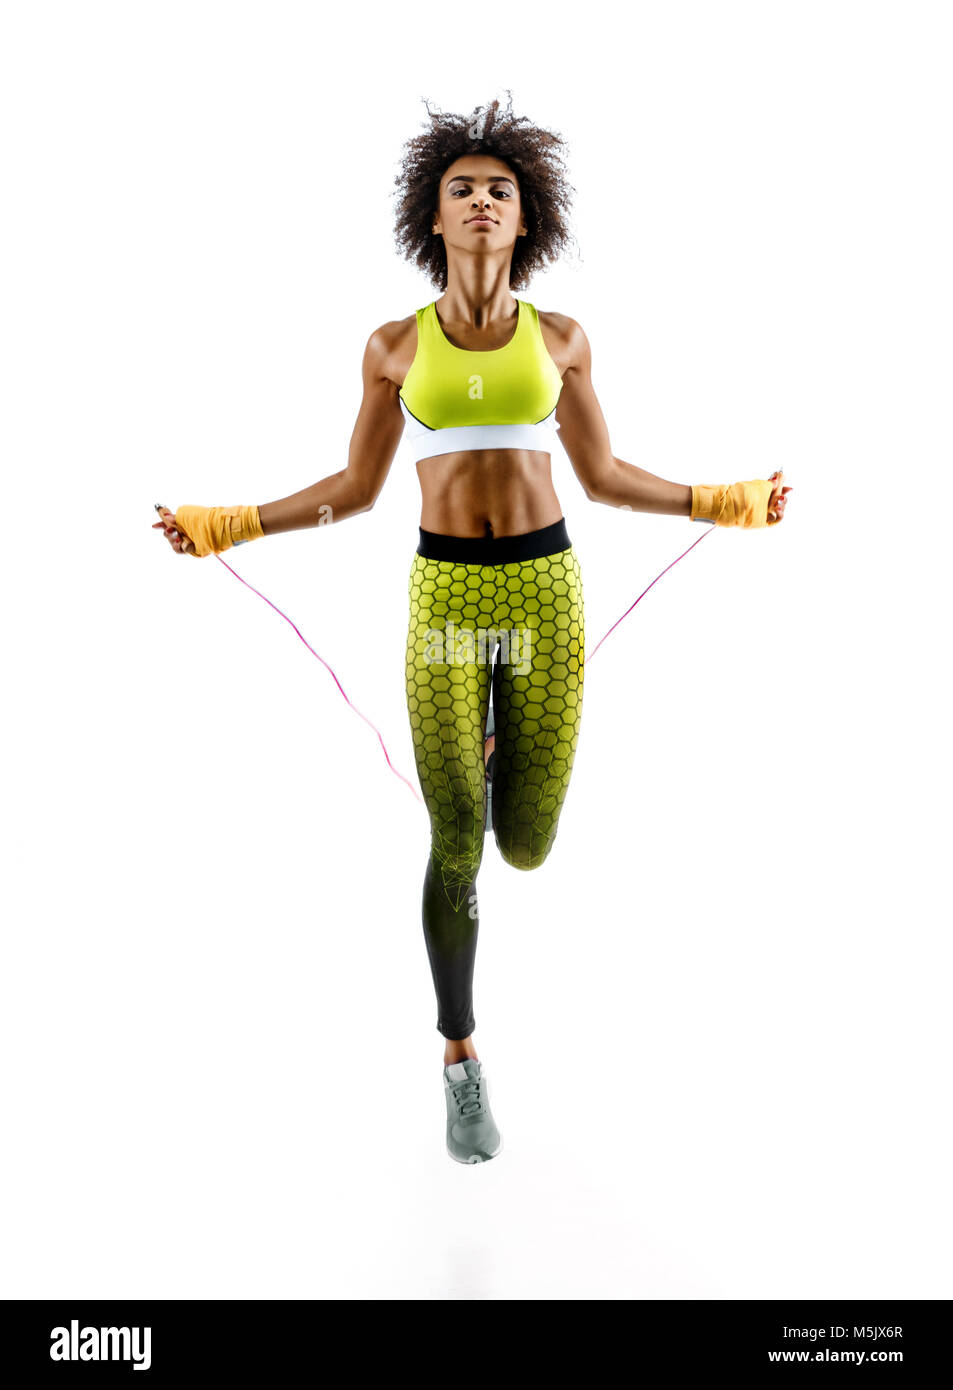 Girl Skipping Rope Stock Photos Images Body Sculpture Skip Young With On White Background Best Cardio Workout Image